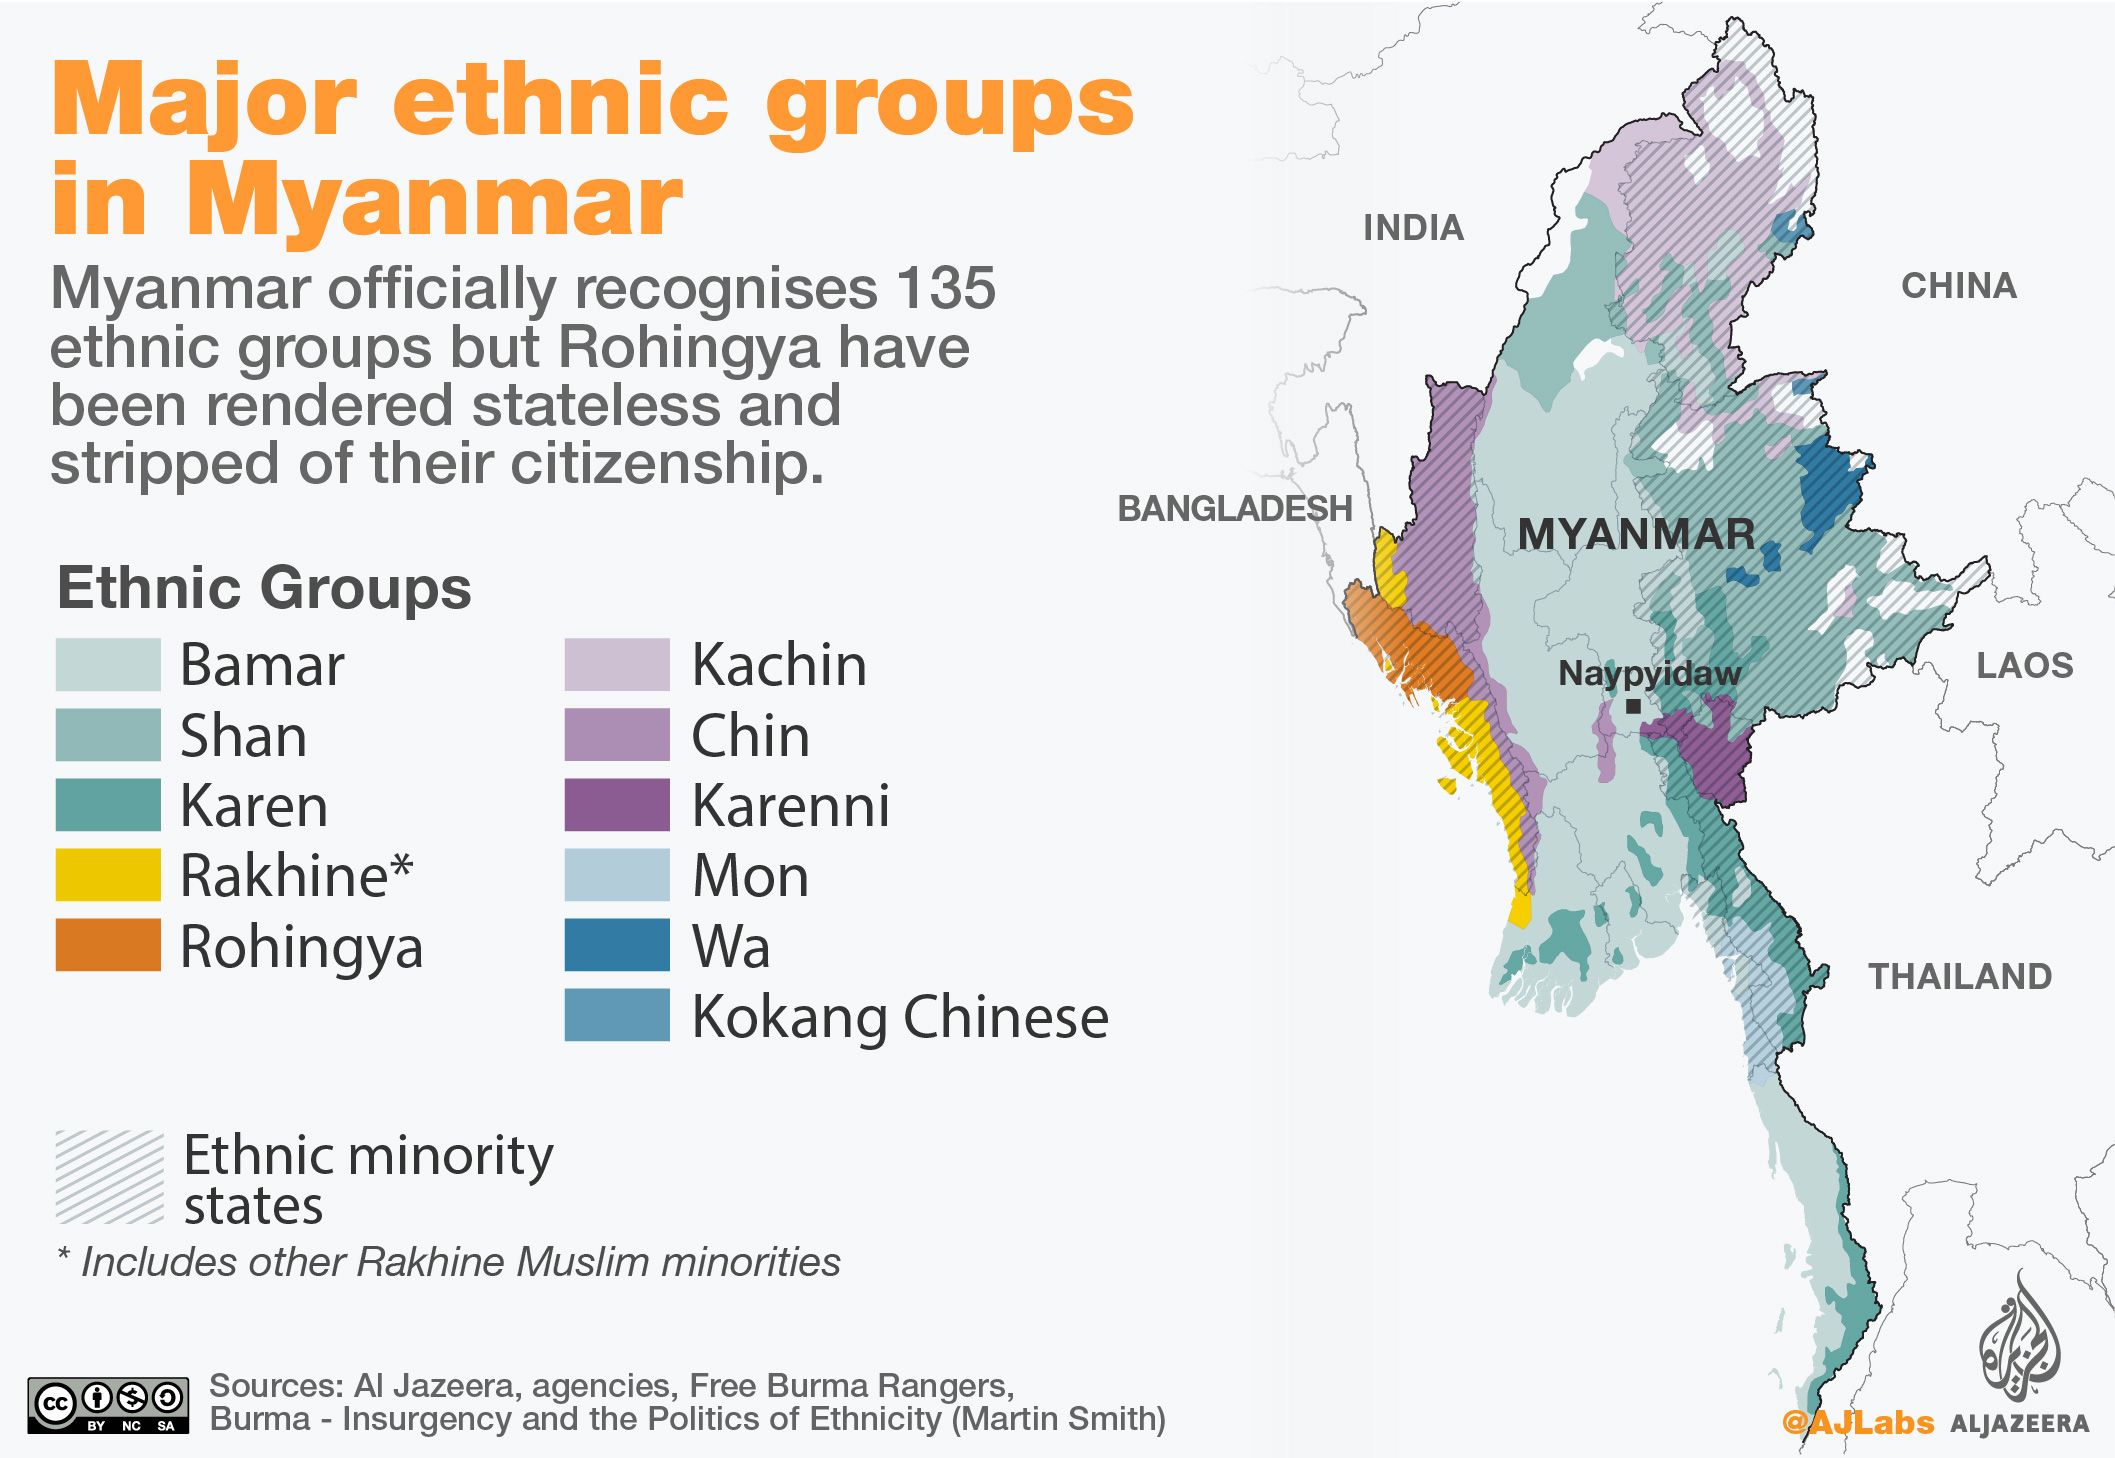 Rohingya ethnic groups